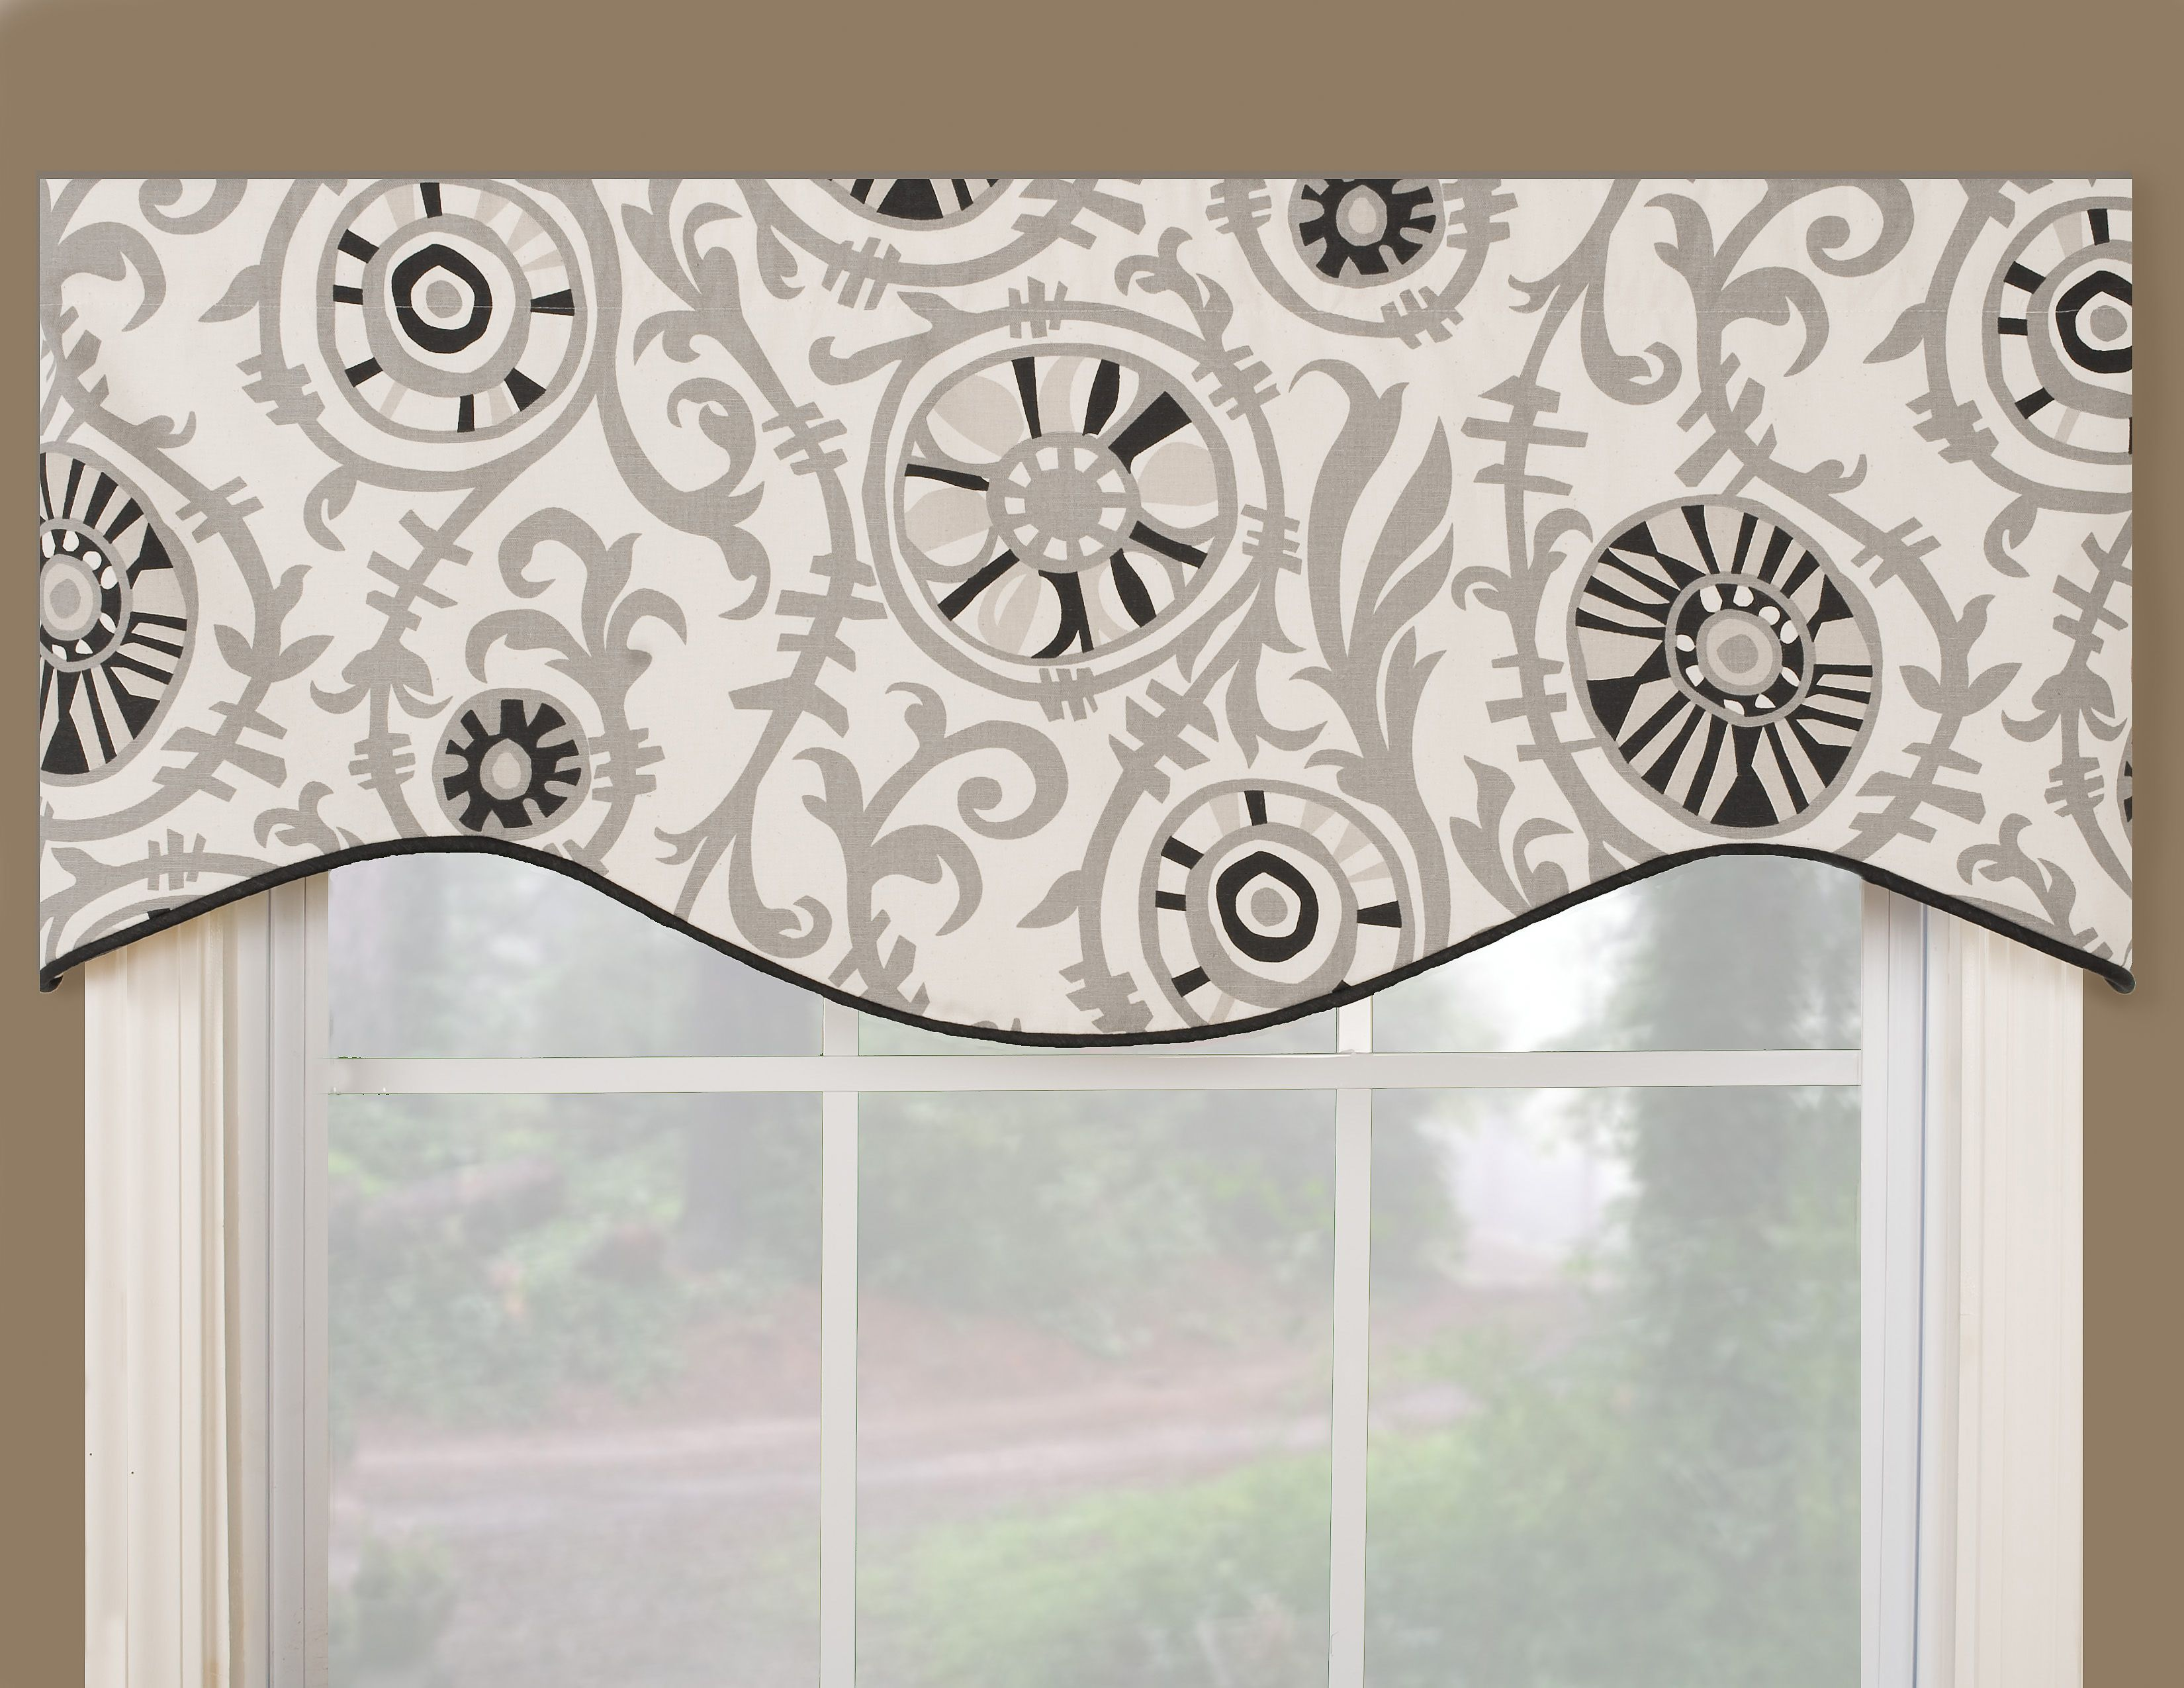 biz doors styles pinte themiracle treatments door valance large decor make ideas corner kitchen valances s with how home adorable window target ctional burlap to curtain curtains patio along decorating bu plus windows interior sliding office